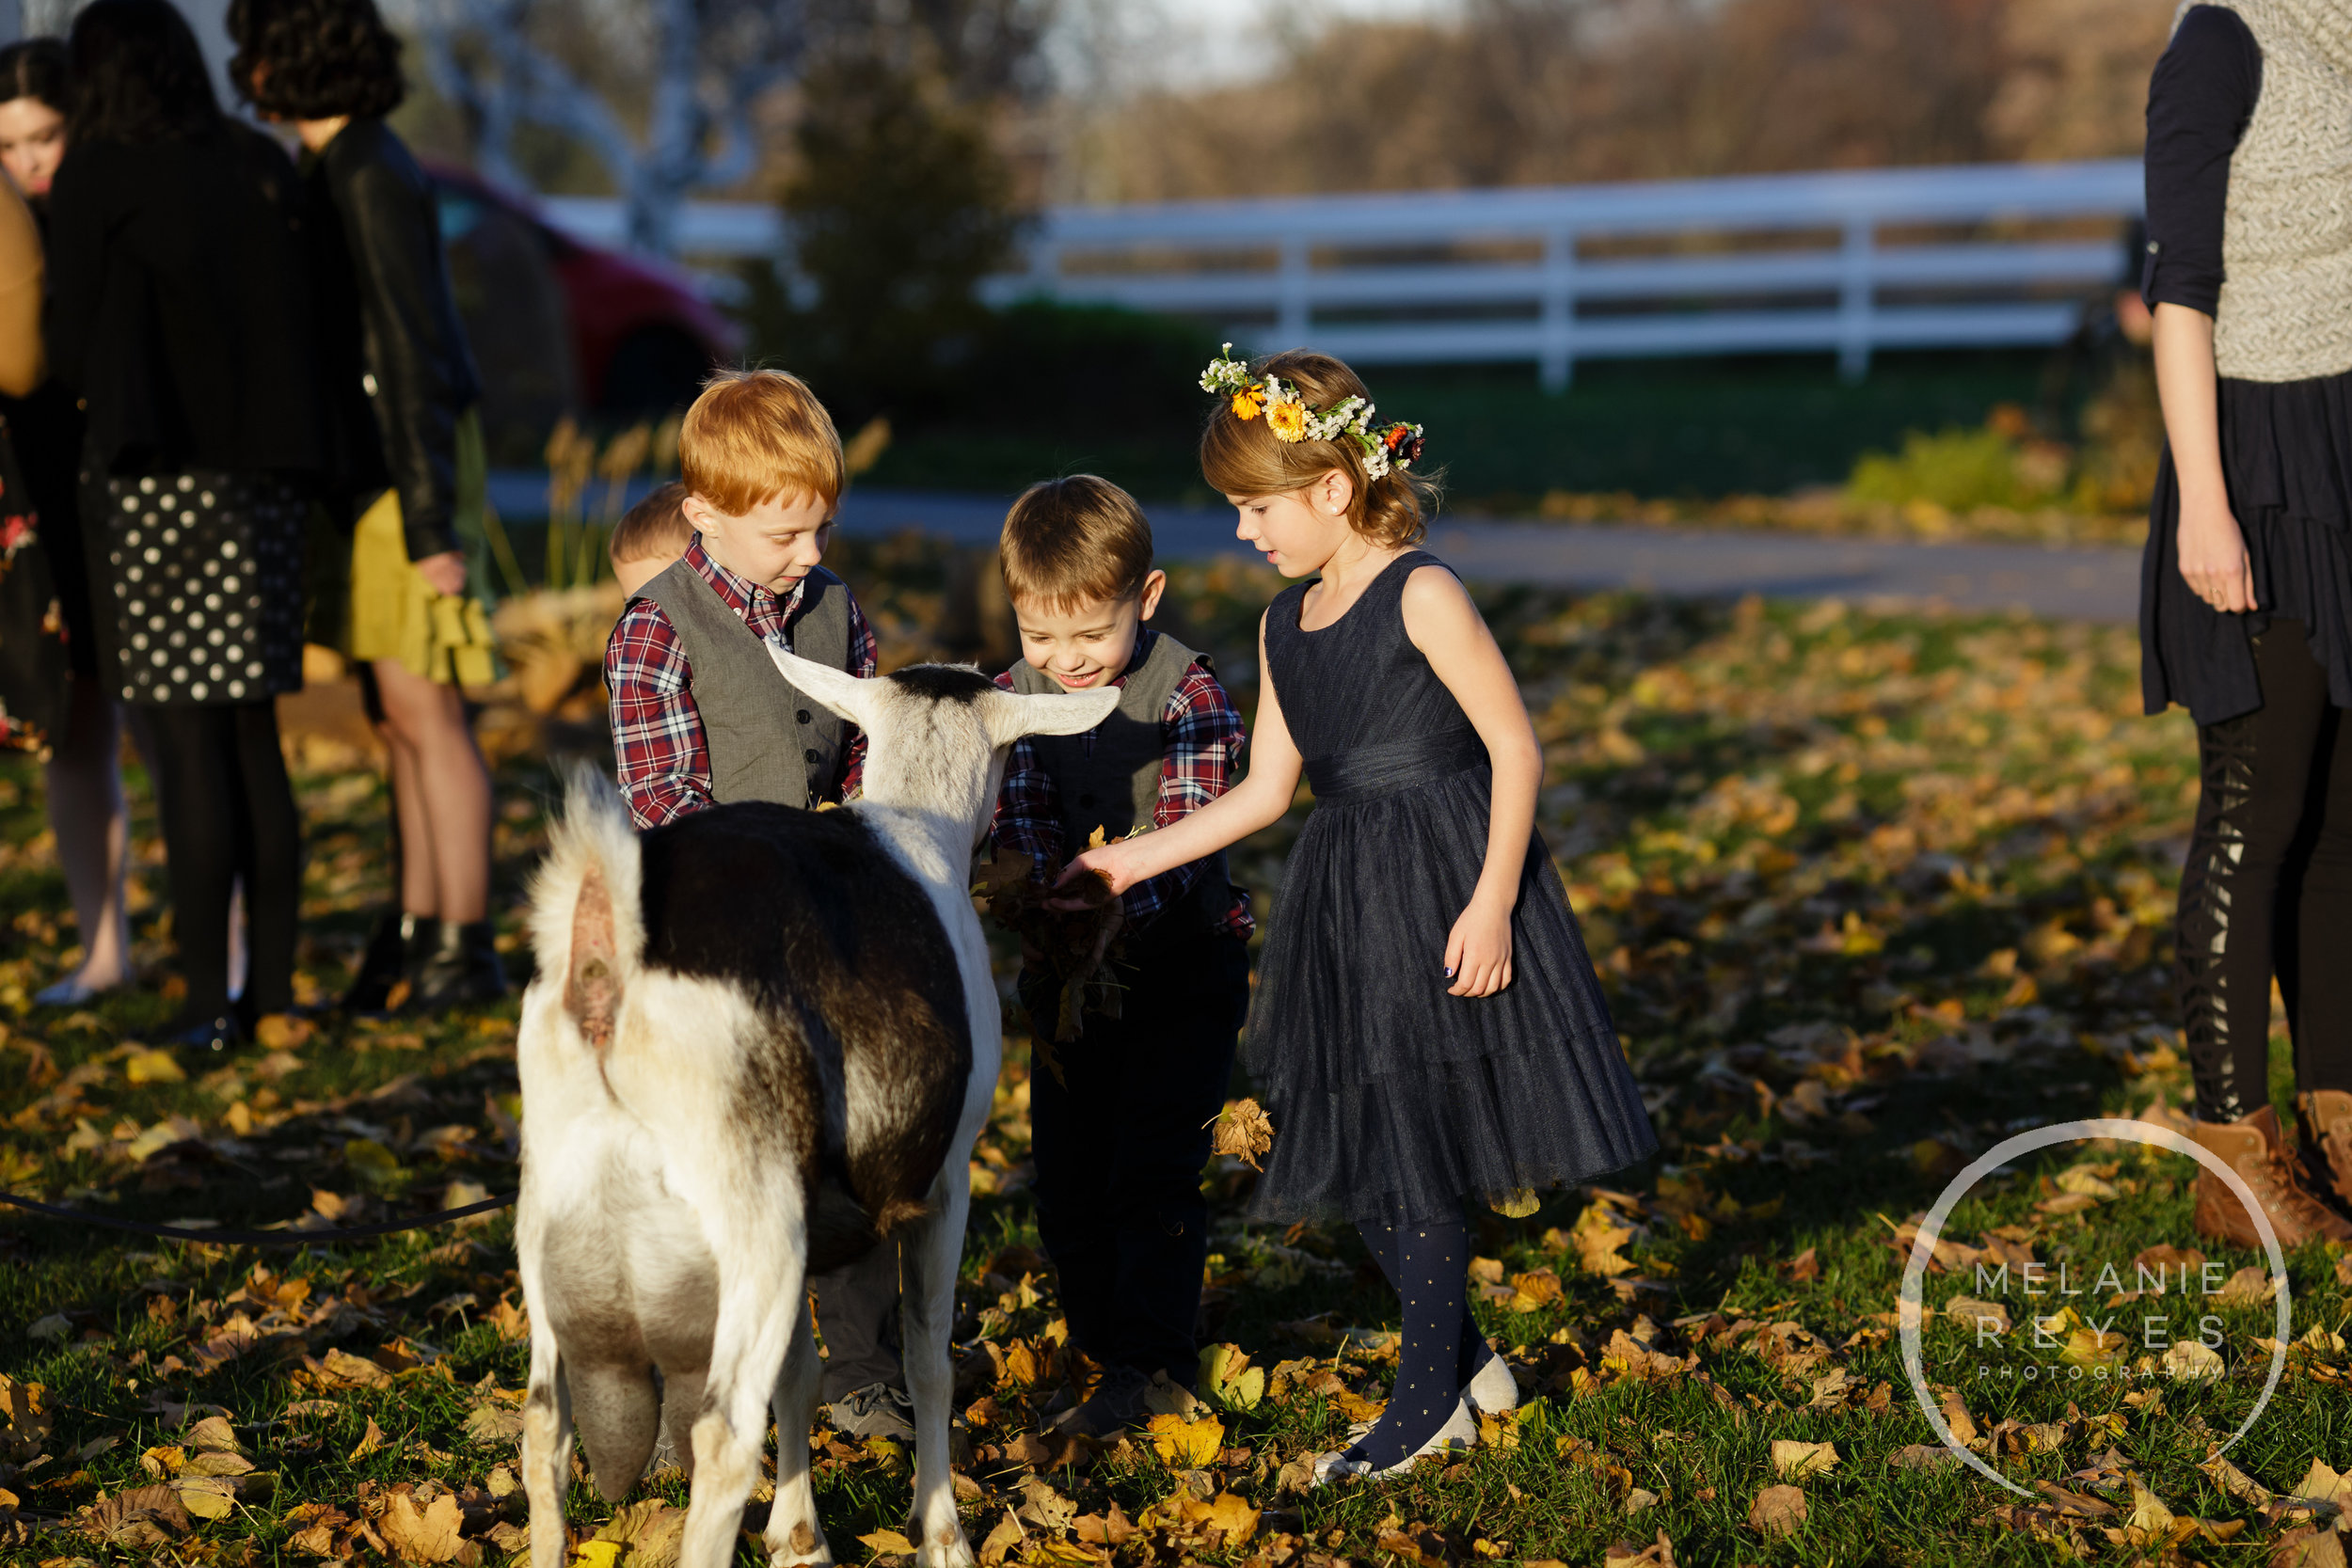 zingermans_cornman_farms_wedding_melanie_reyes_photography_038.JPG